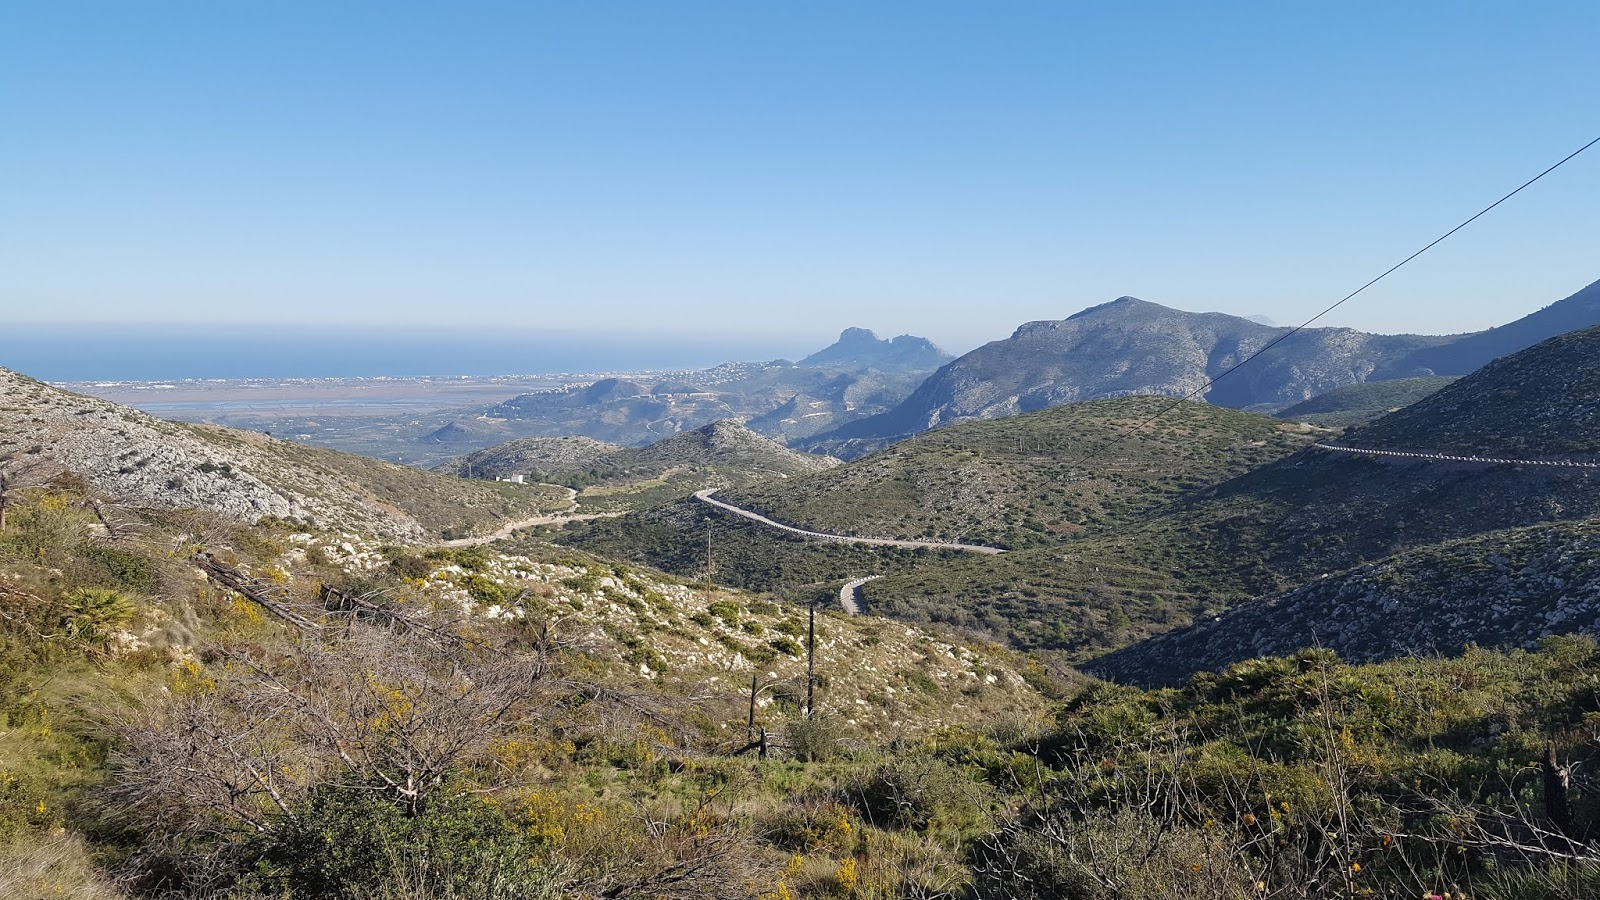 View of Mediterranean Sea from Vall d'ebo climb, Alicante, Spain